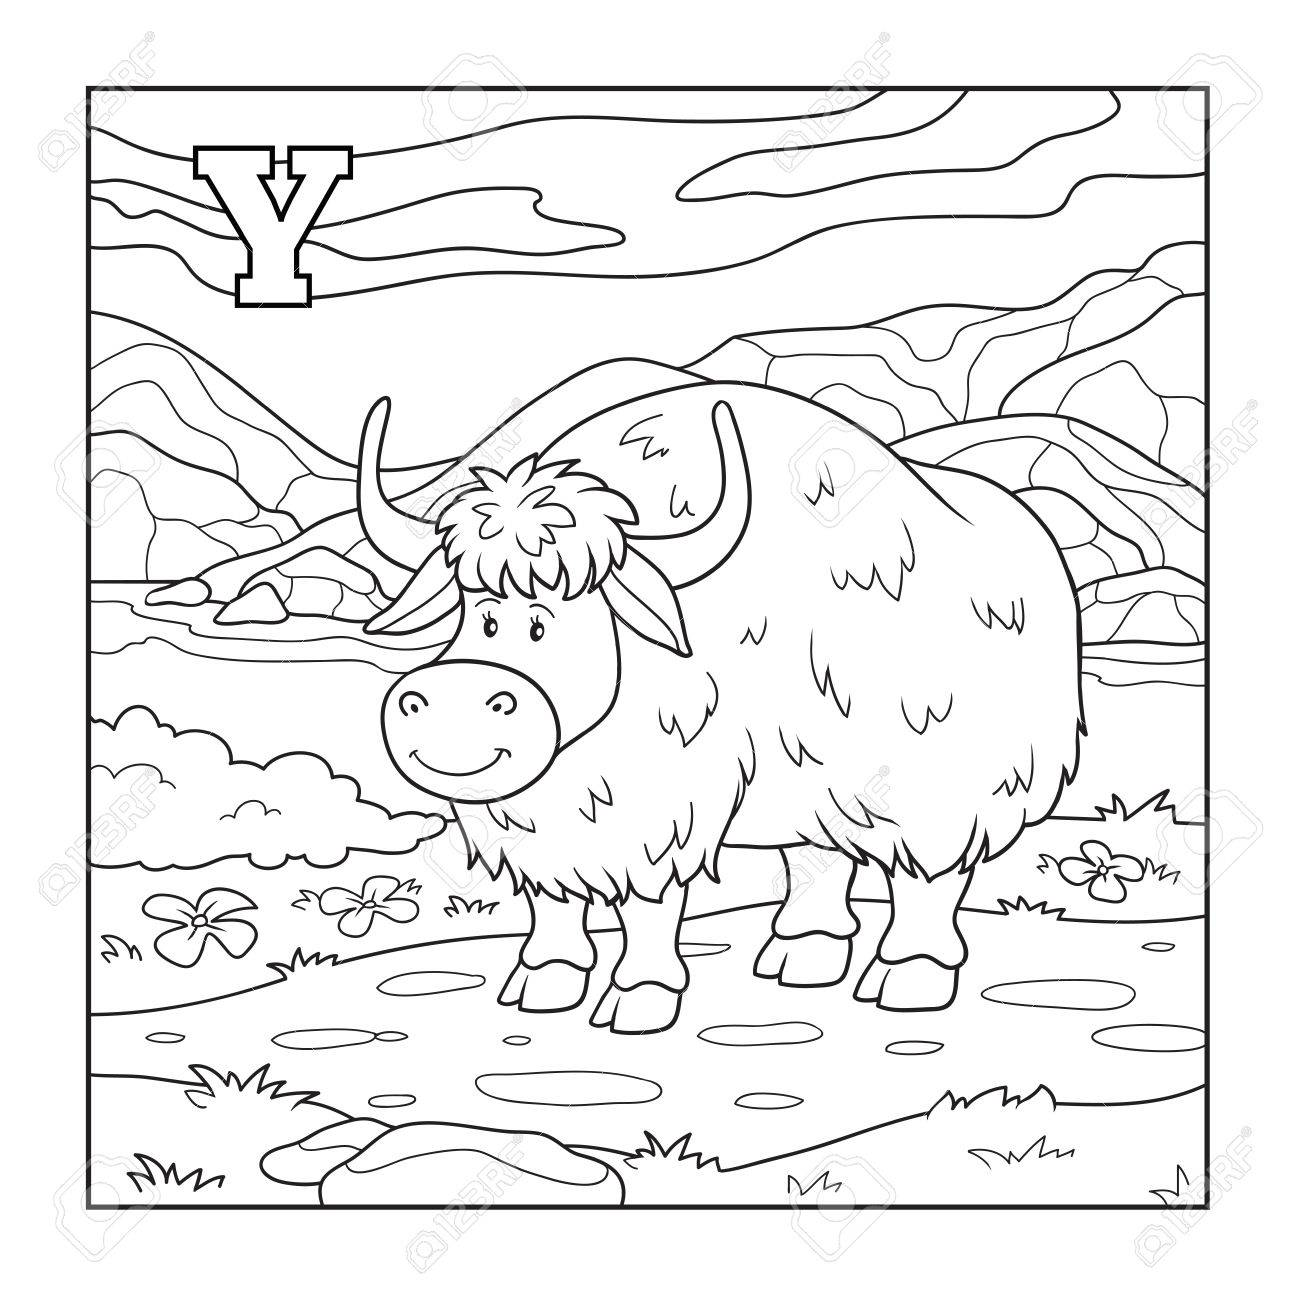 Free coloring pages yak - Coloring Book Yak Colorless Illustration Letter Y Stock Vector 37580108